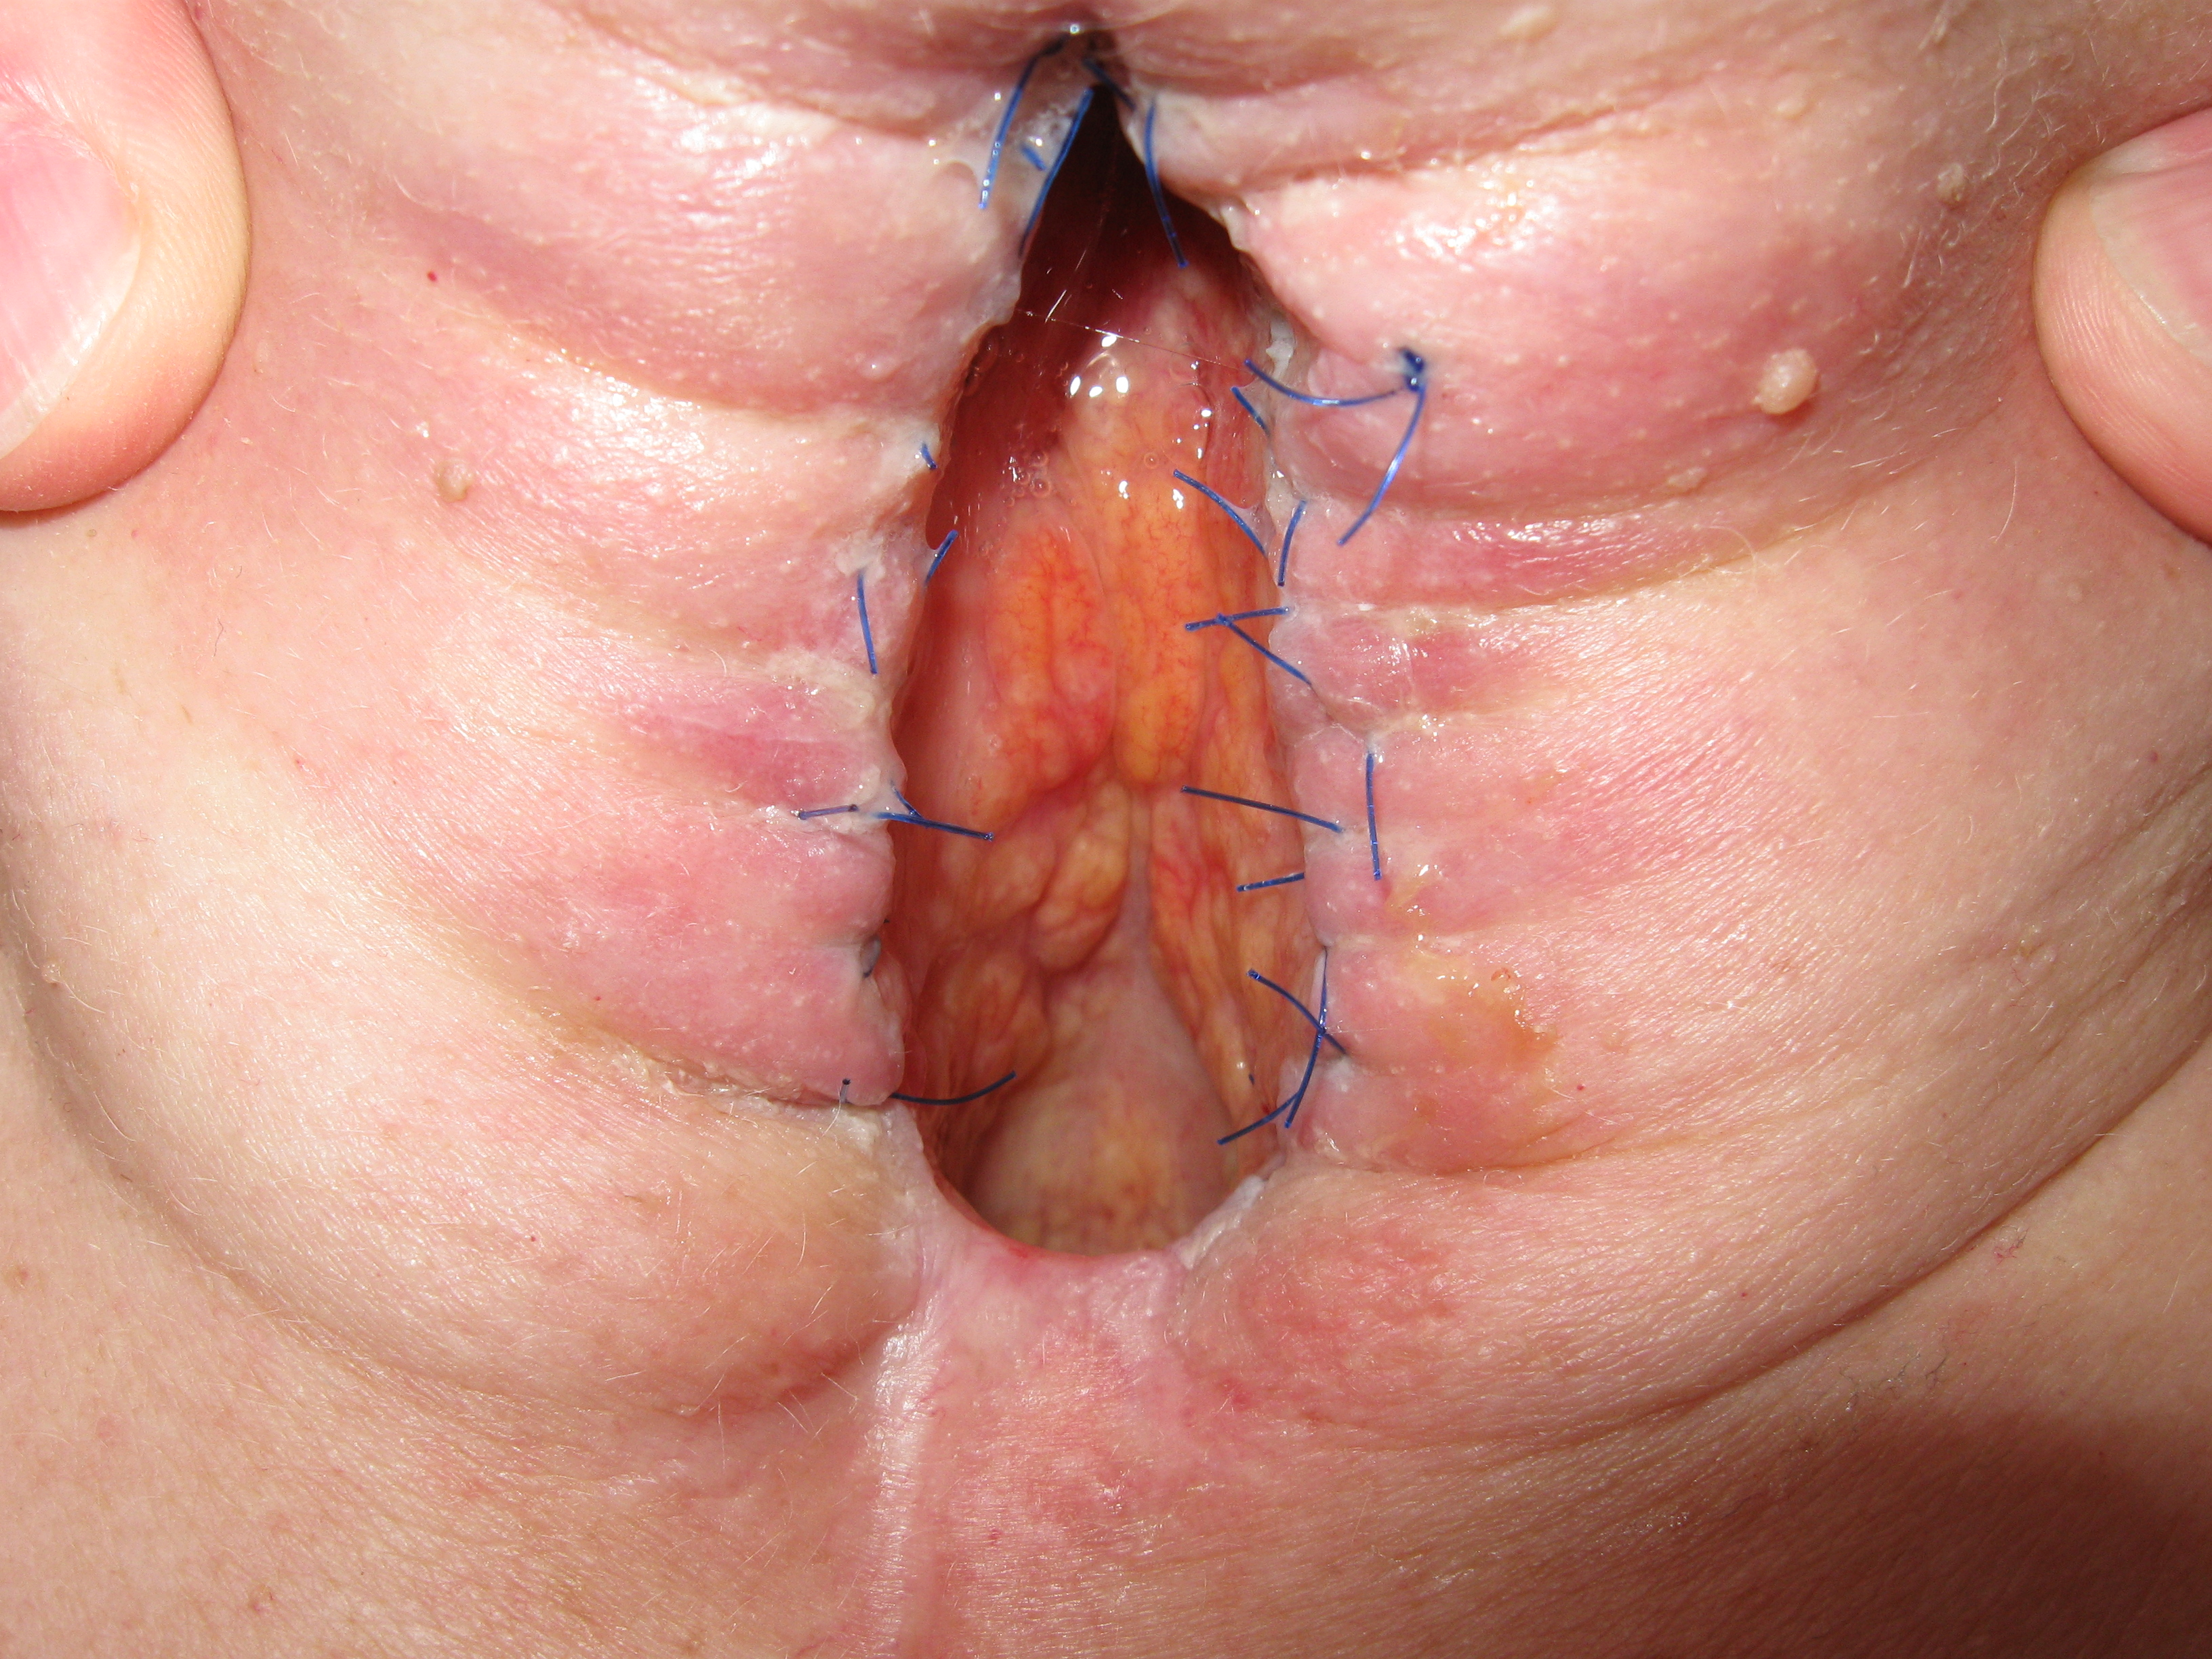 deep anal fissure